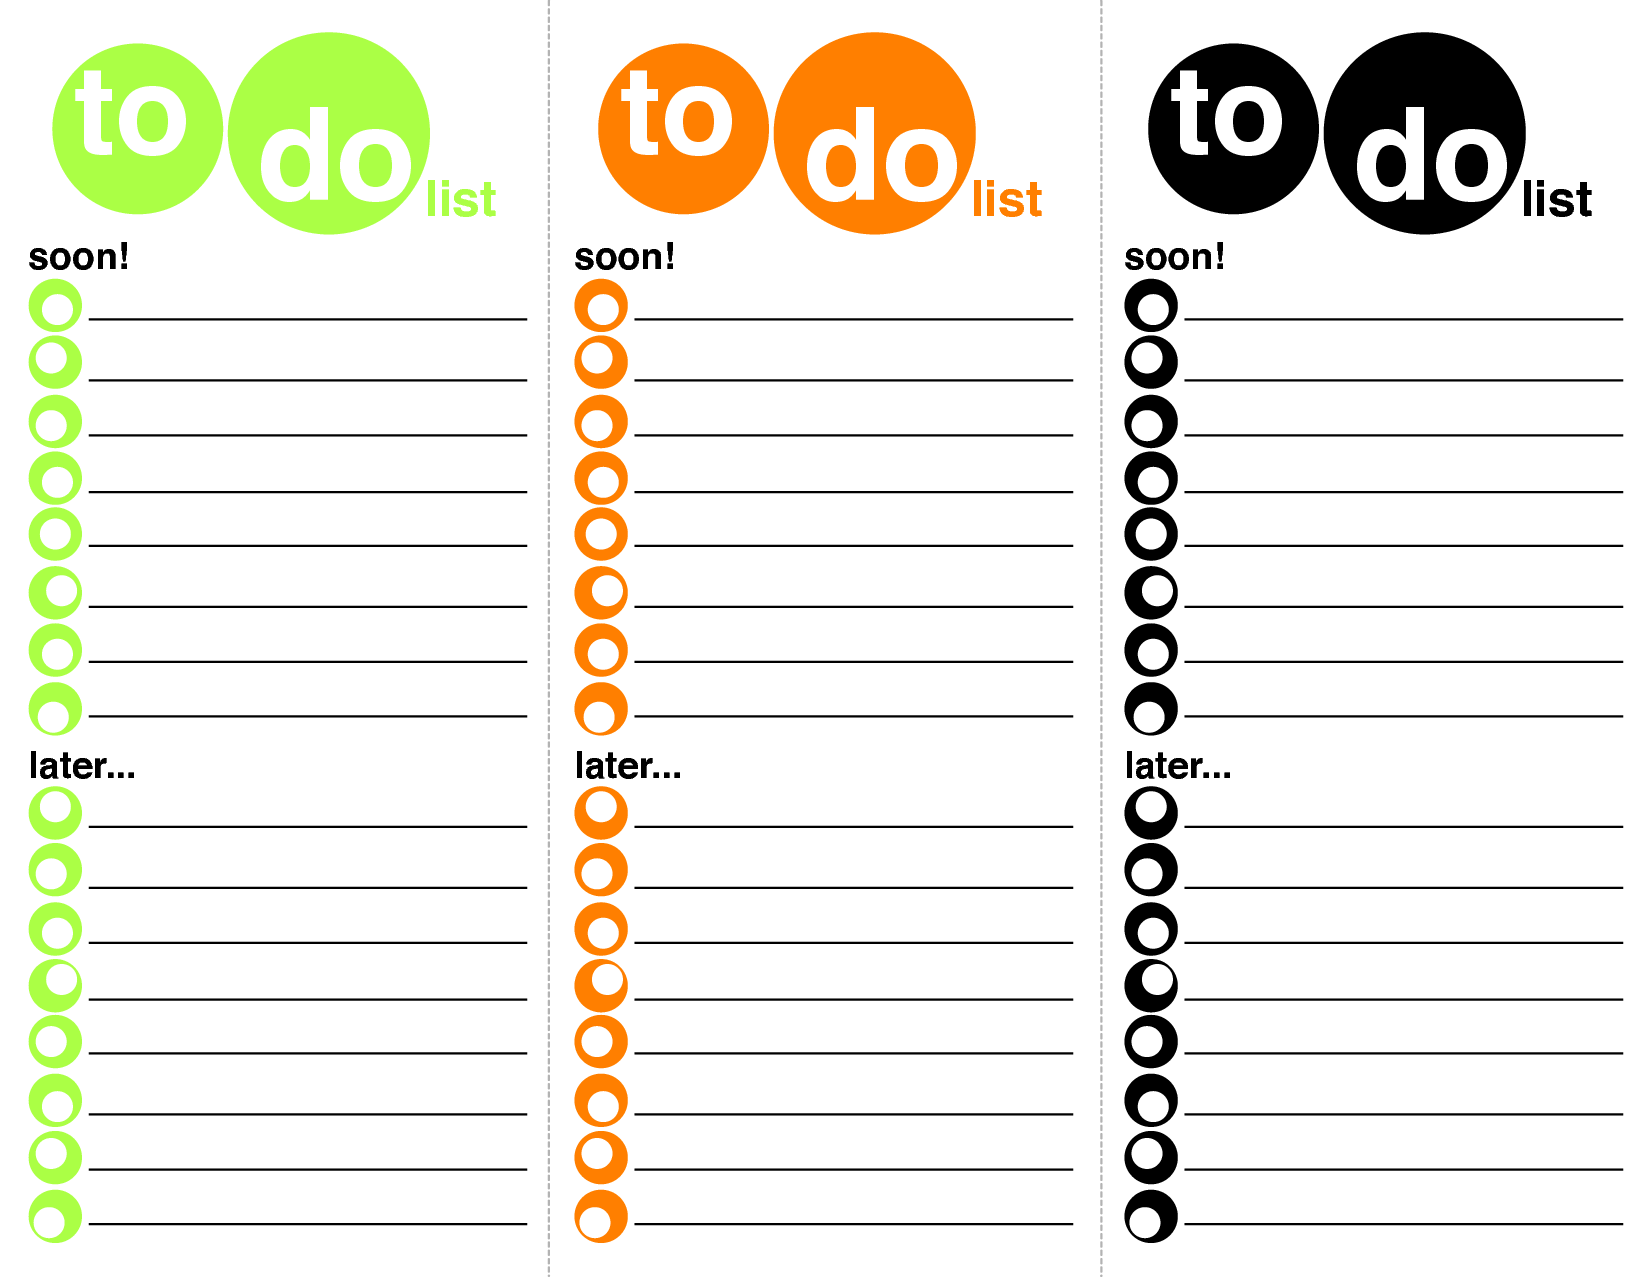 things to do lists template